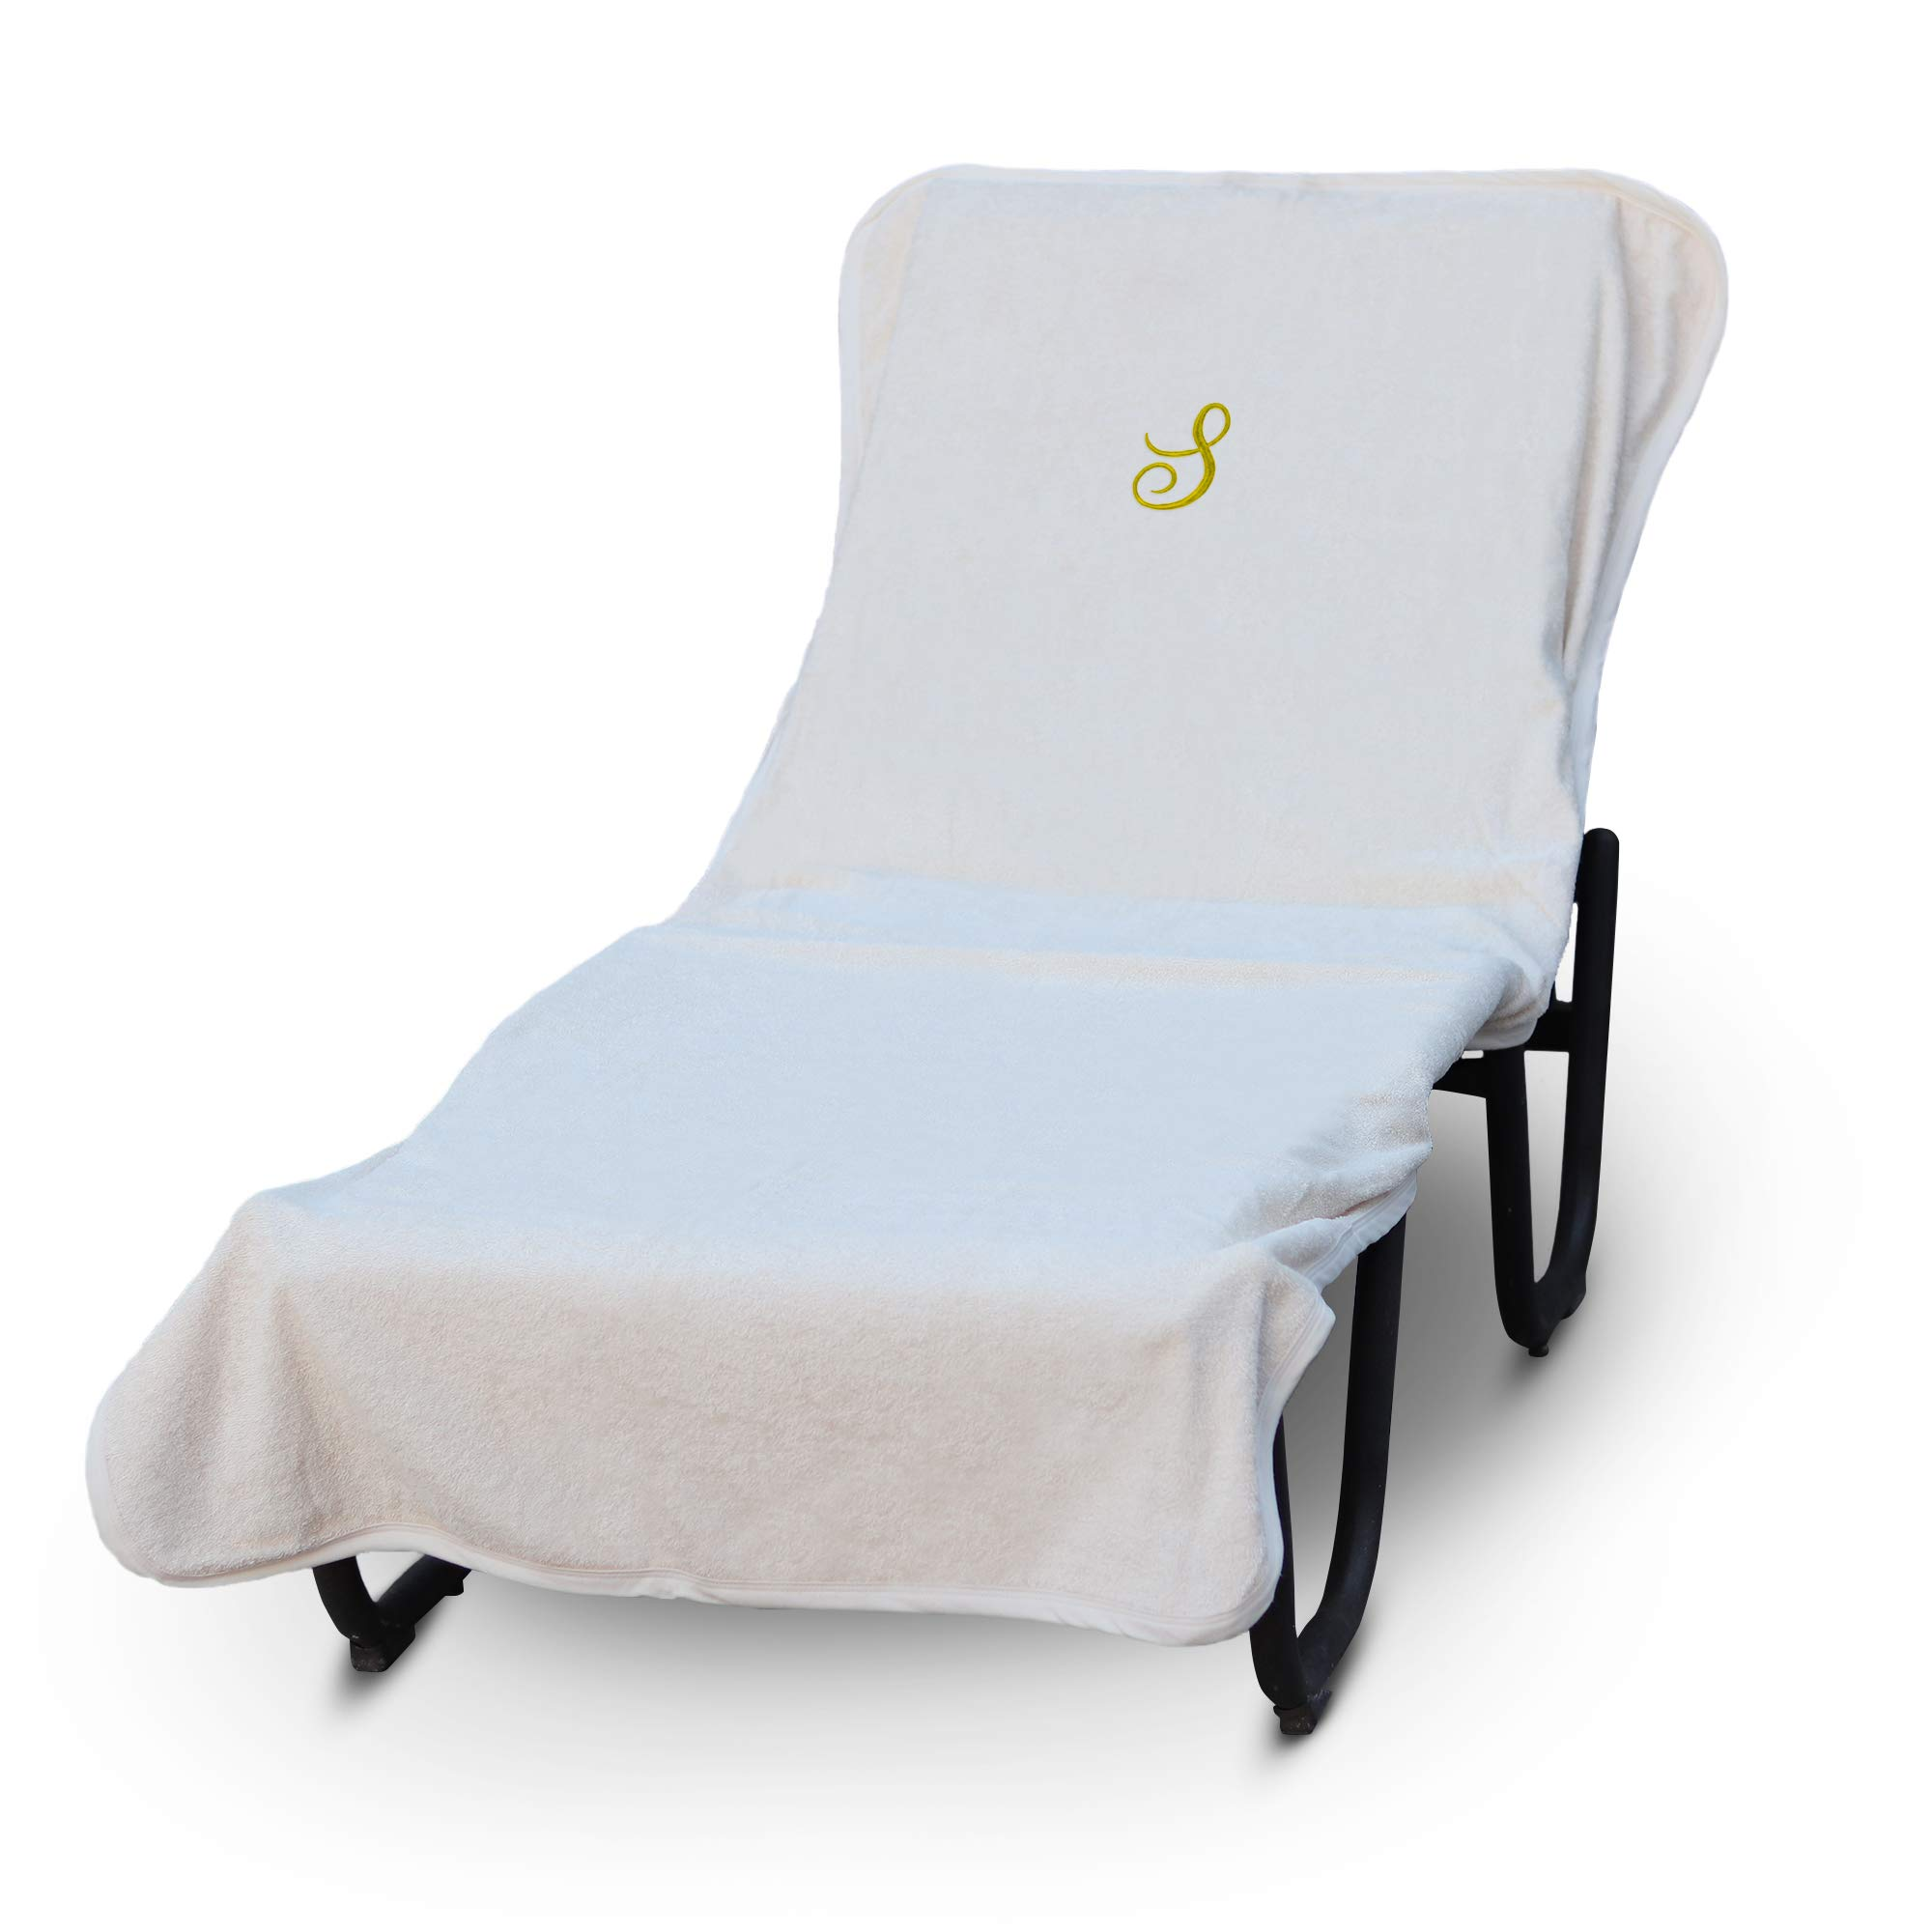 Luxury Hotel & Spa Monogrammed Pool Chaise Lounge Cover, Gold Embroidered Towel - Extra Absorbent 100% Turkish Cotton- Soft Terry Finish - Hotel-Style, Standard Size - Script S White